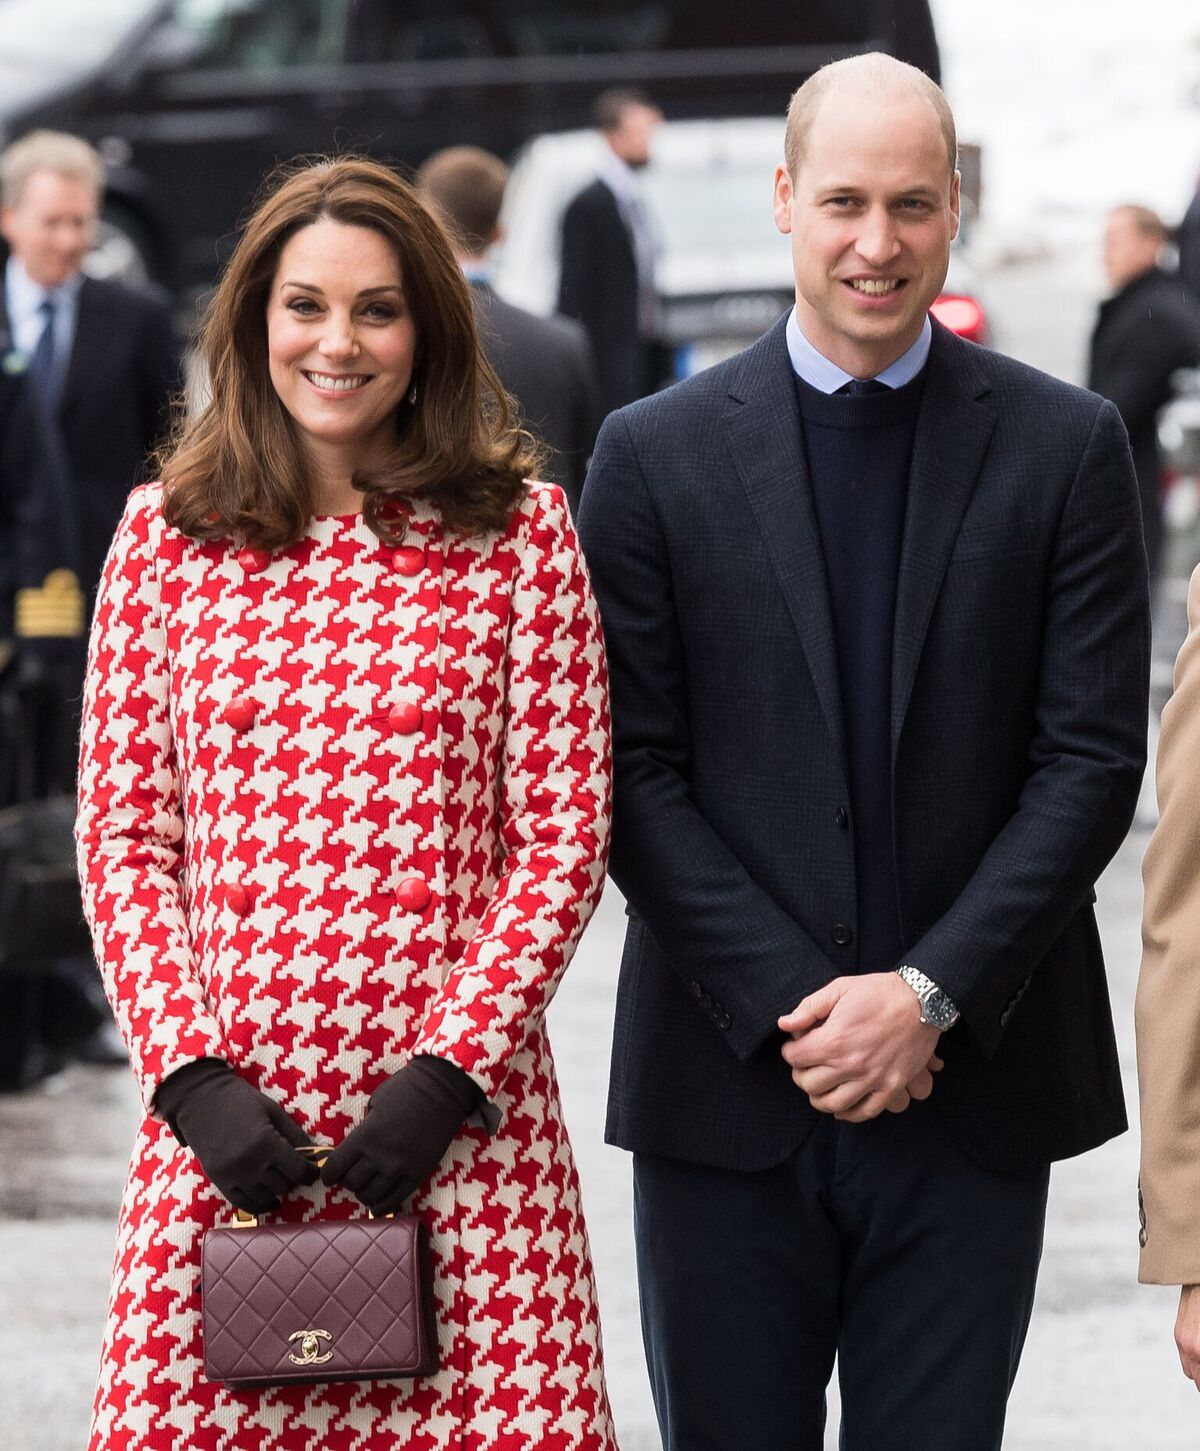 Catherine, Duchess of Cambridge and Prince William, Duke of Cambridge a visit the Karolinska Institute to meet with academics and practitioners to discuss Sweden's approach to managing mental health challenges during day two of their Royal visit to Sweden and Norway on January 31, 2018   Photo: Getty Images